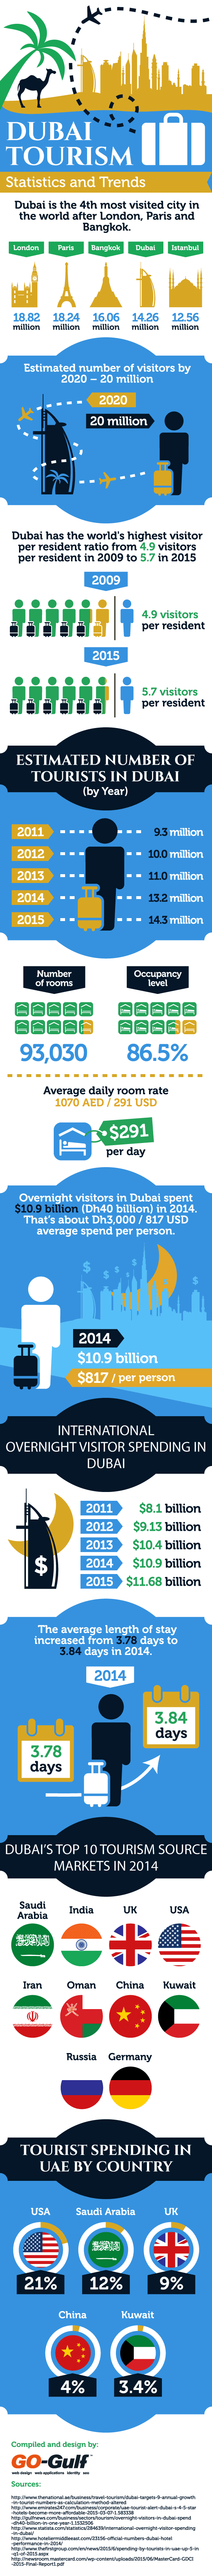 Dubai Tourism Statistics and Trends #Infographic